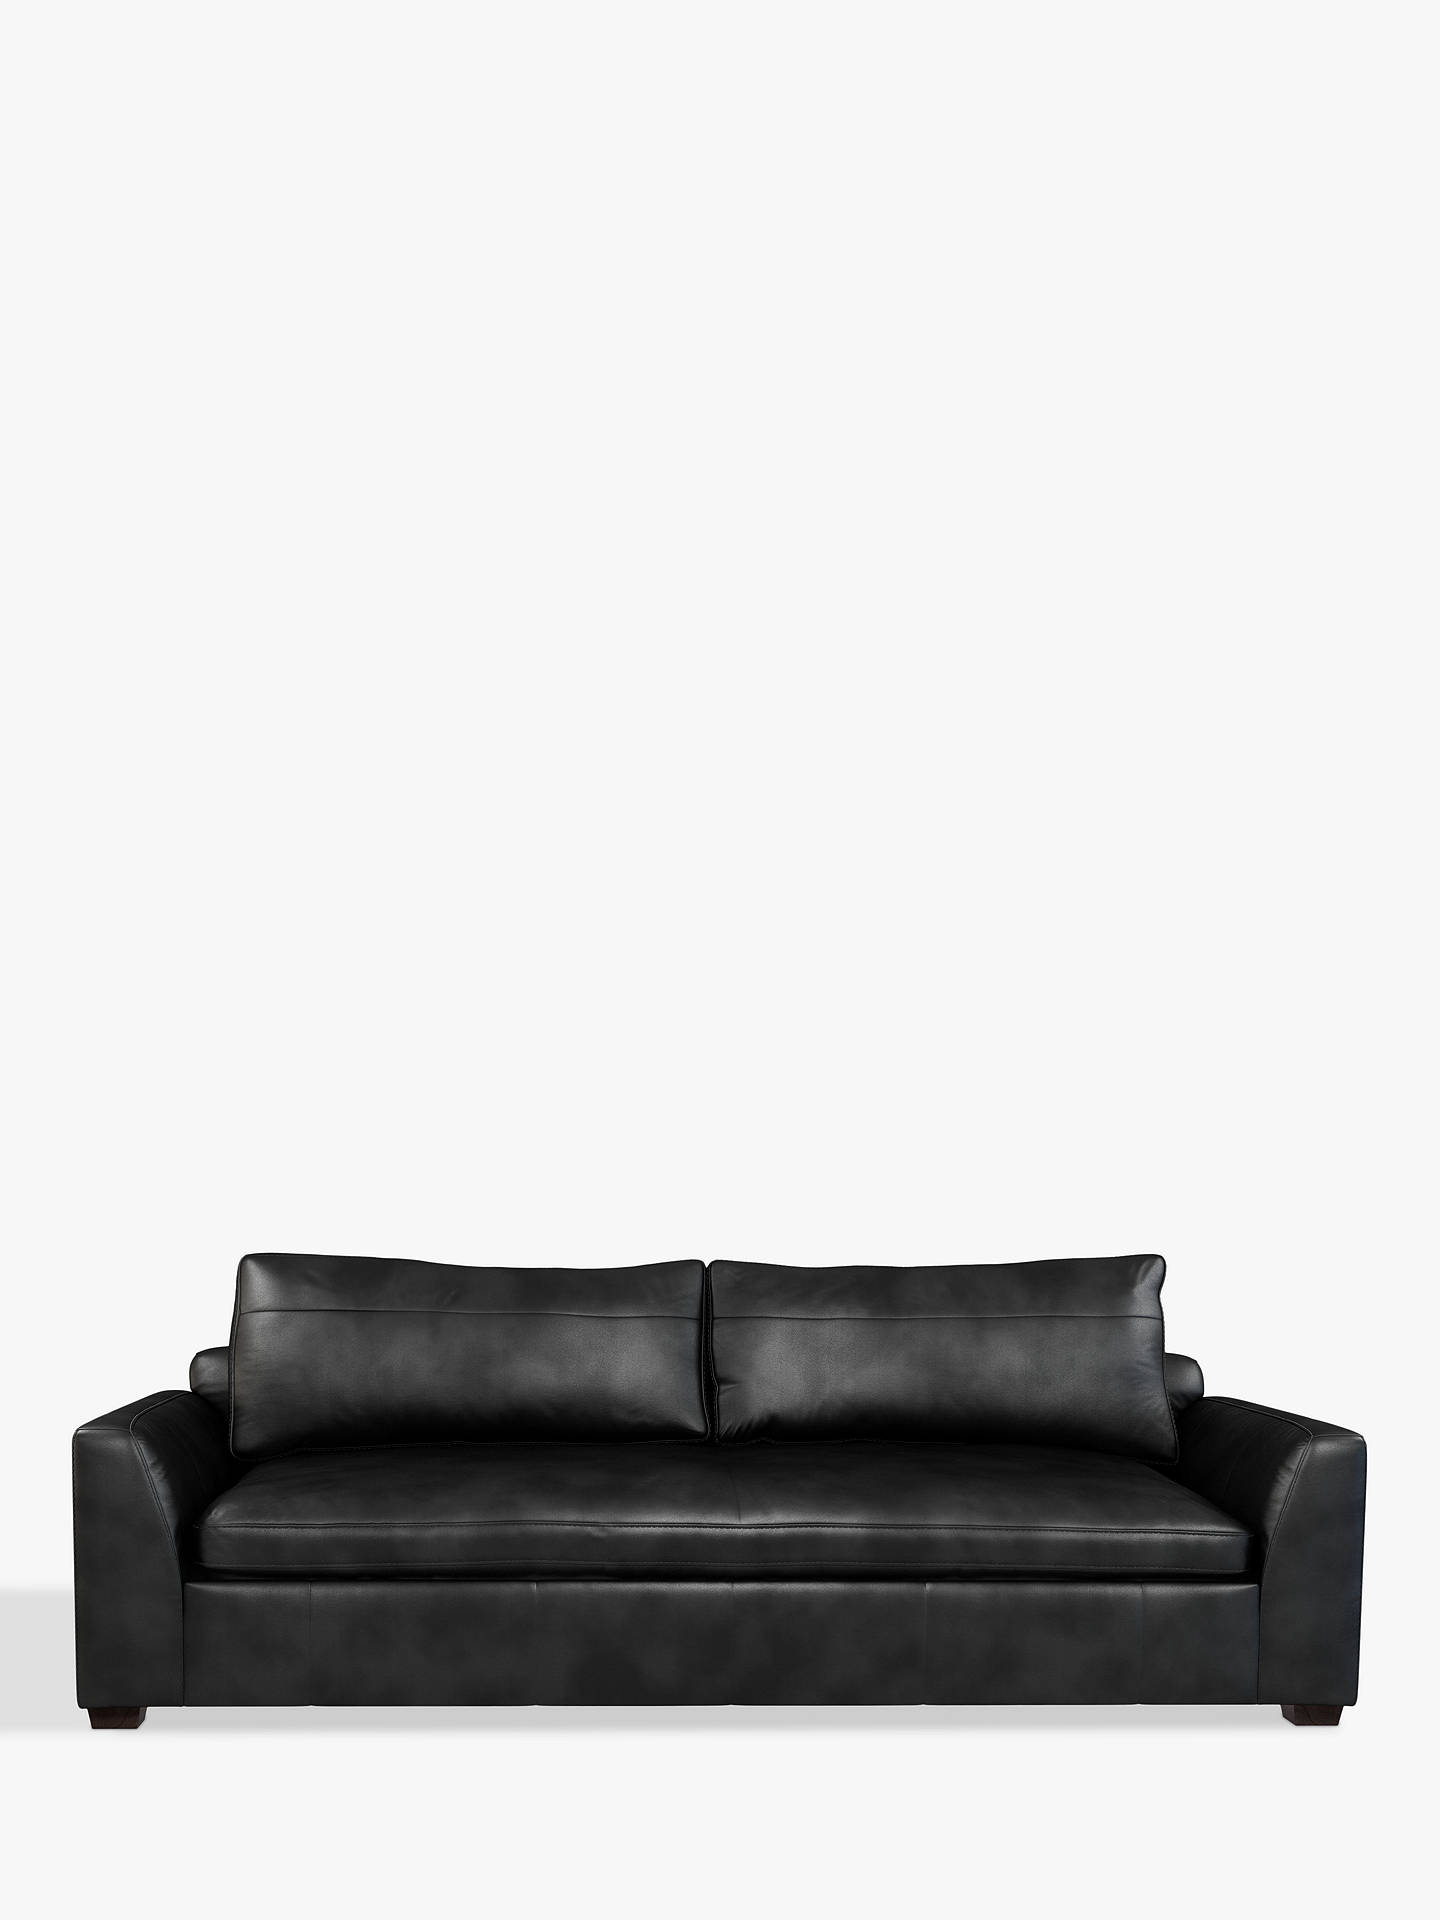 John Lewis & Partners Tortona Leather Grand 4 Seater Sofa, Contempo Black